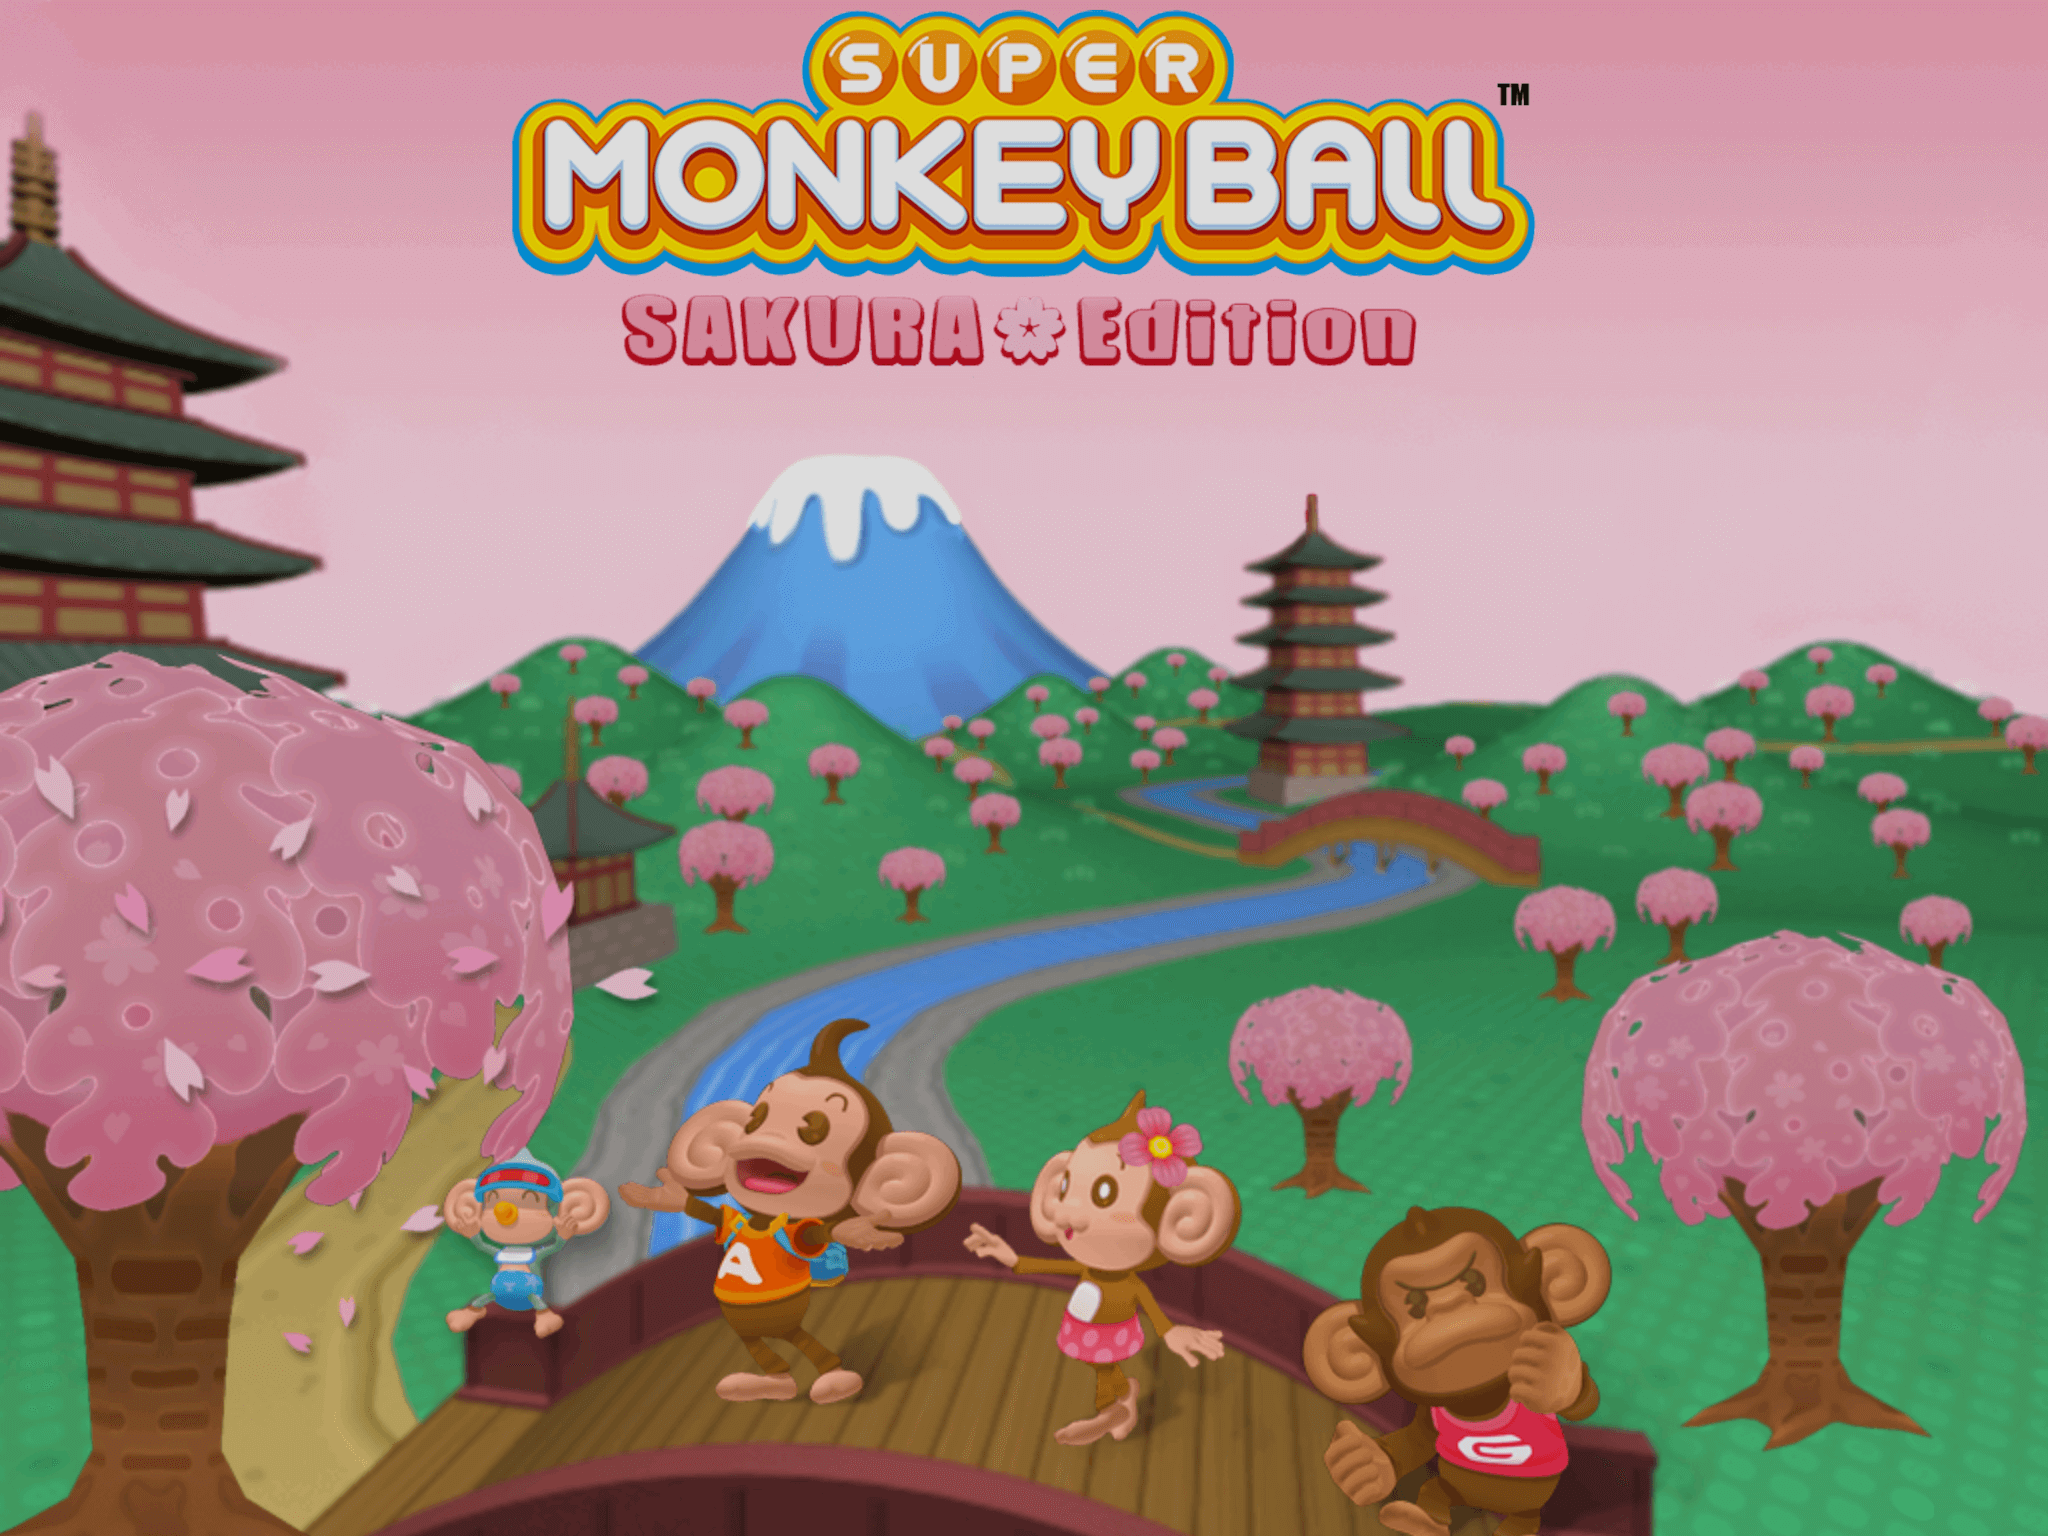 Super Monkey Ball: Sakura Edition, ya disponible en iOS y Android